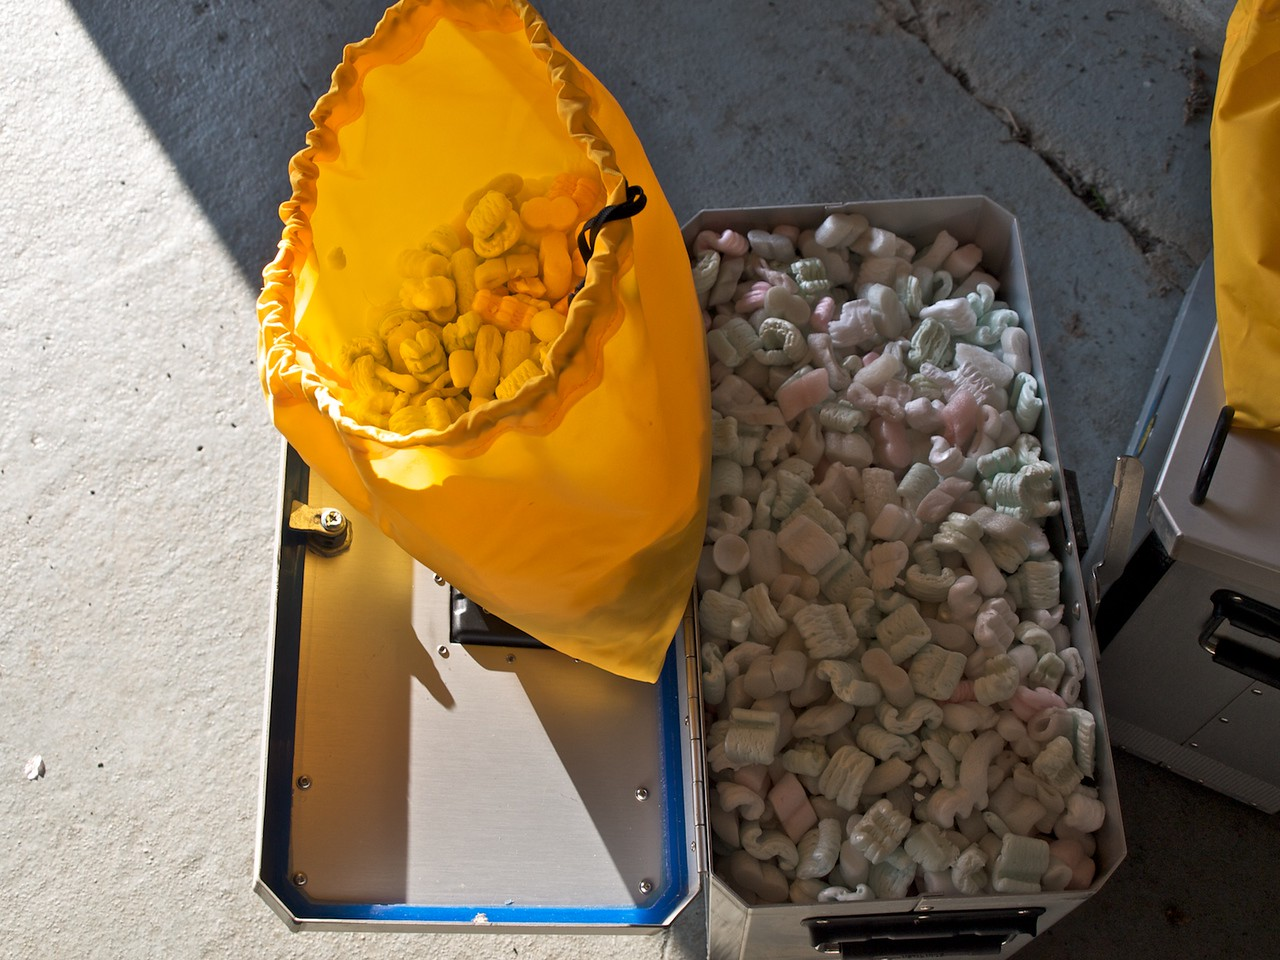 One of my 38-litre Metal Mule panniers filled with the packing peanuts that had been in the Great Basin, along with another maybe 8-litres still in the yellow bag, plus the (2) 2-litre bottle holders gives about a 50-litre capacity--just like Giant Loop says.